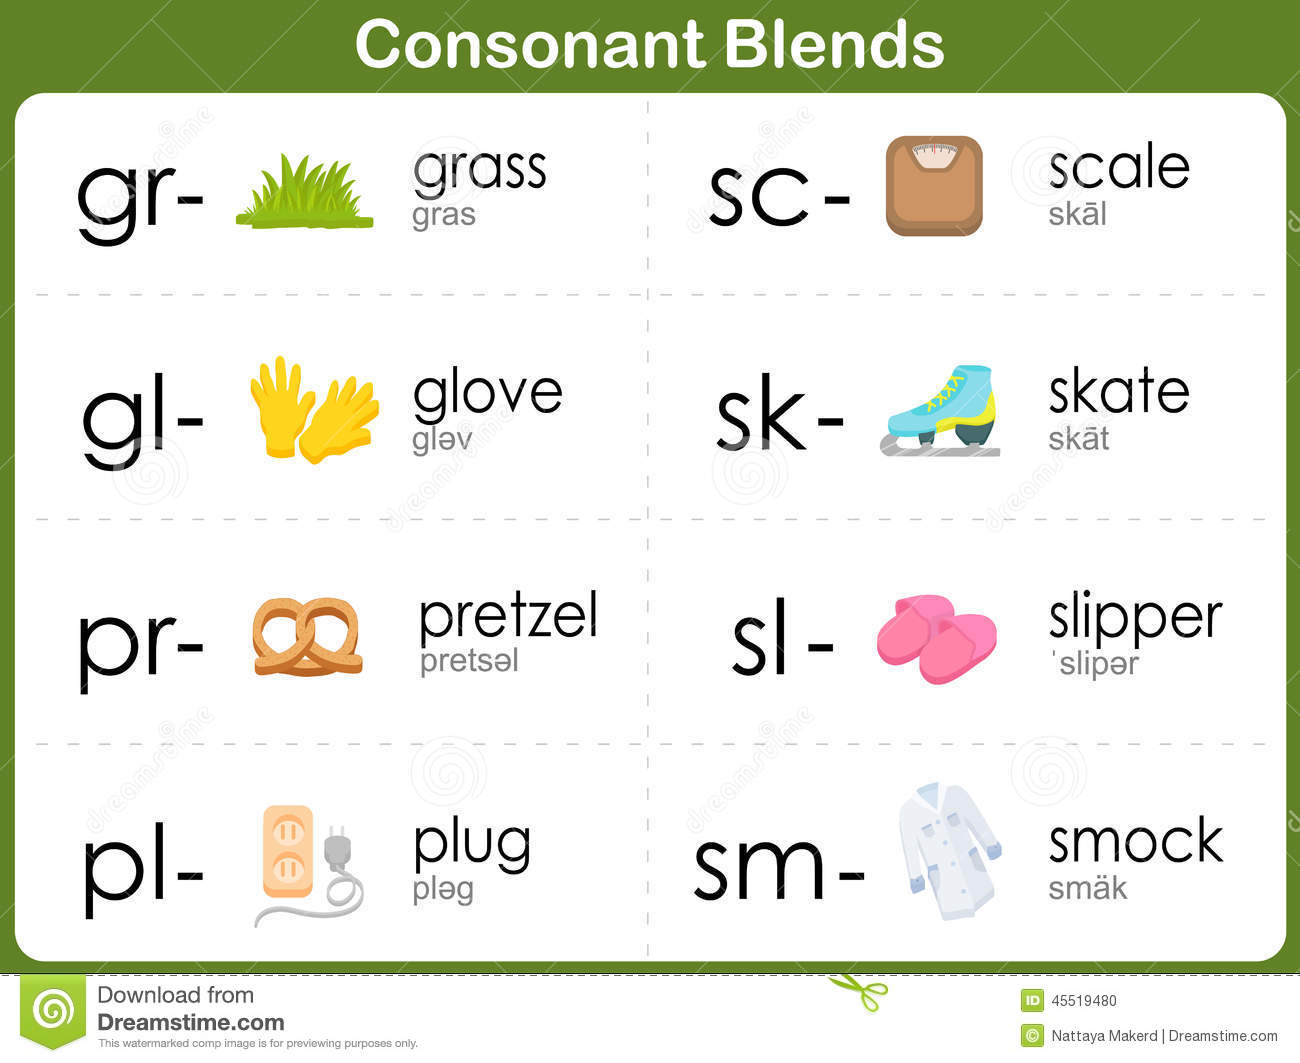 Consonant Blends Worksheet For Kids Vector Image 45519480 – Consonant Blend Worksheets